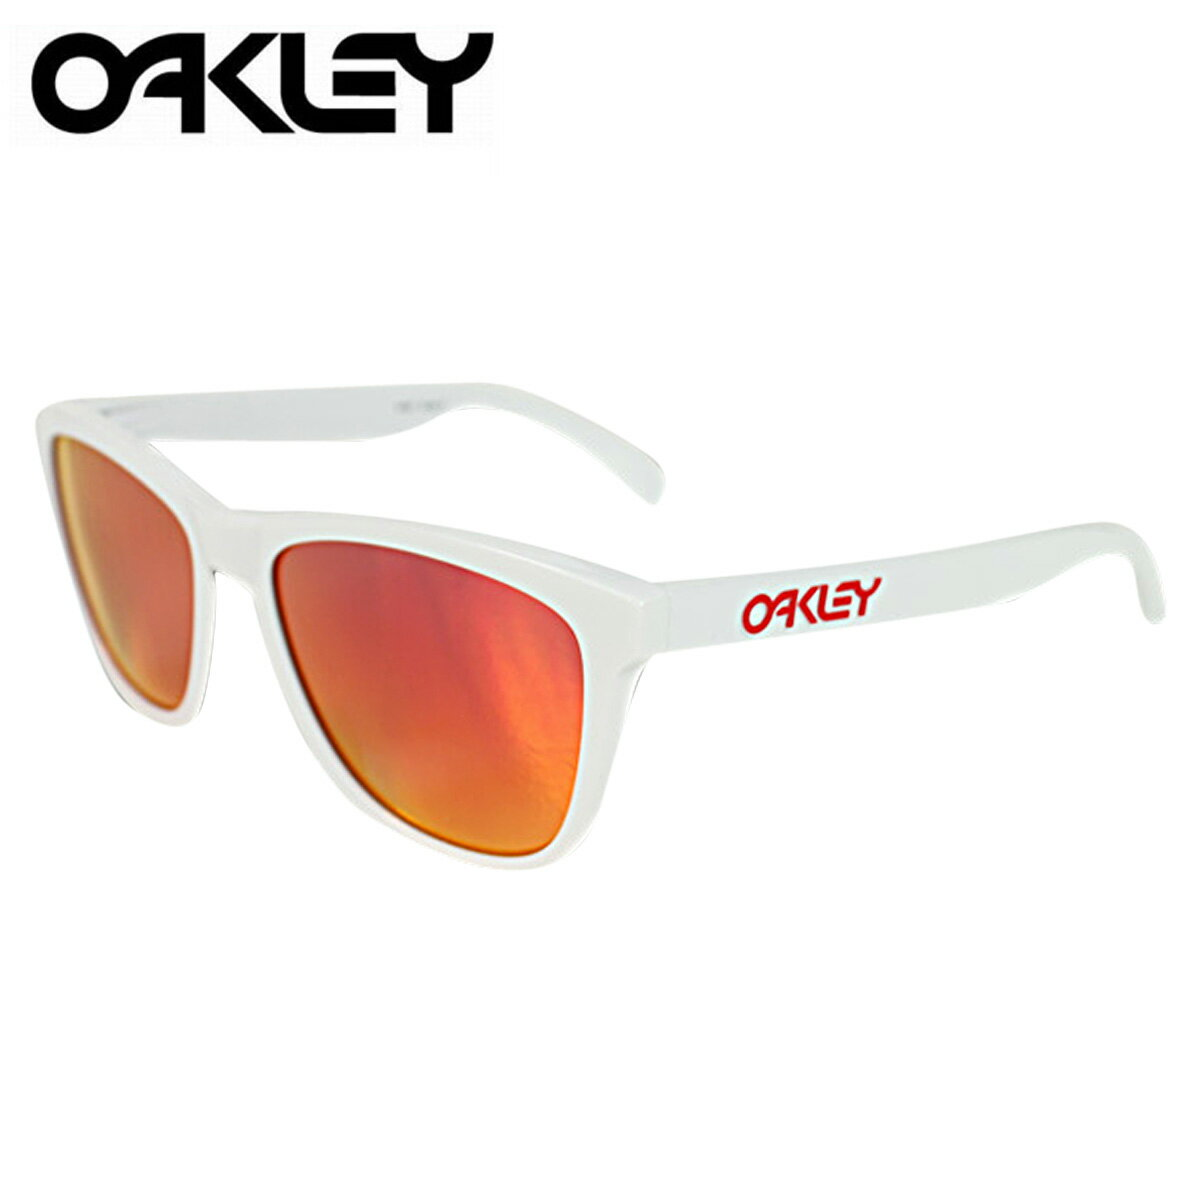 Oakley Sunglasses For Women White